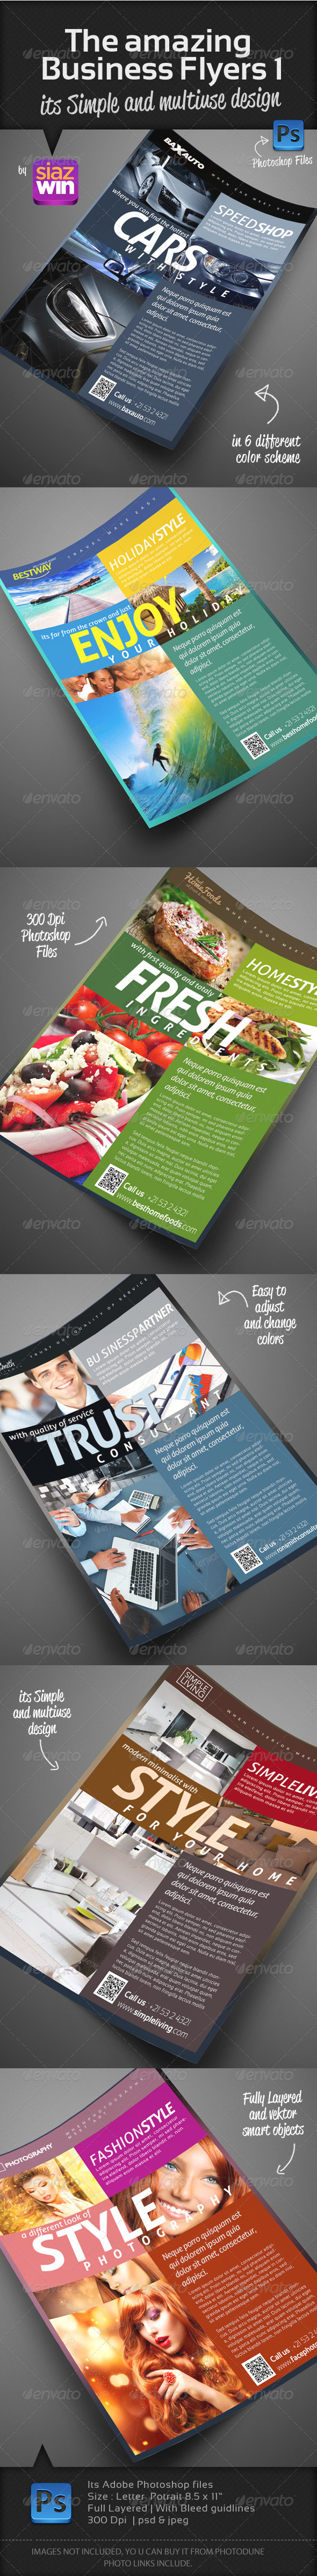 The Amazing Business Flyers 1 - Corporate Flyers